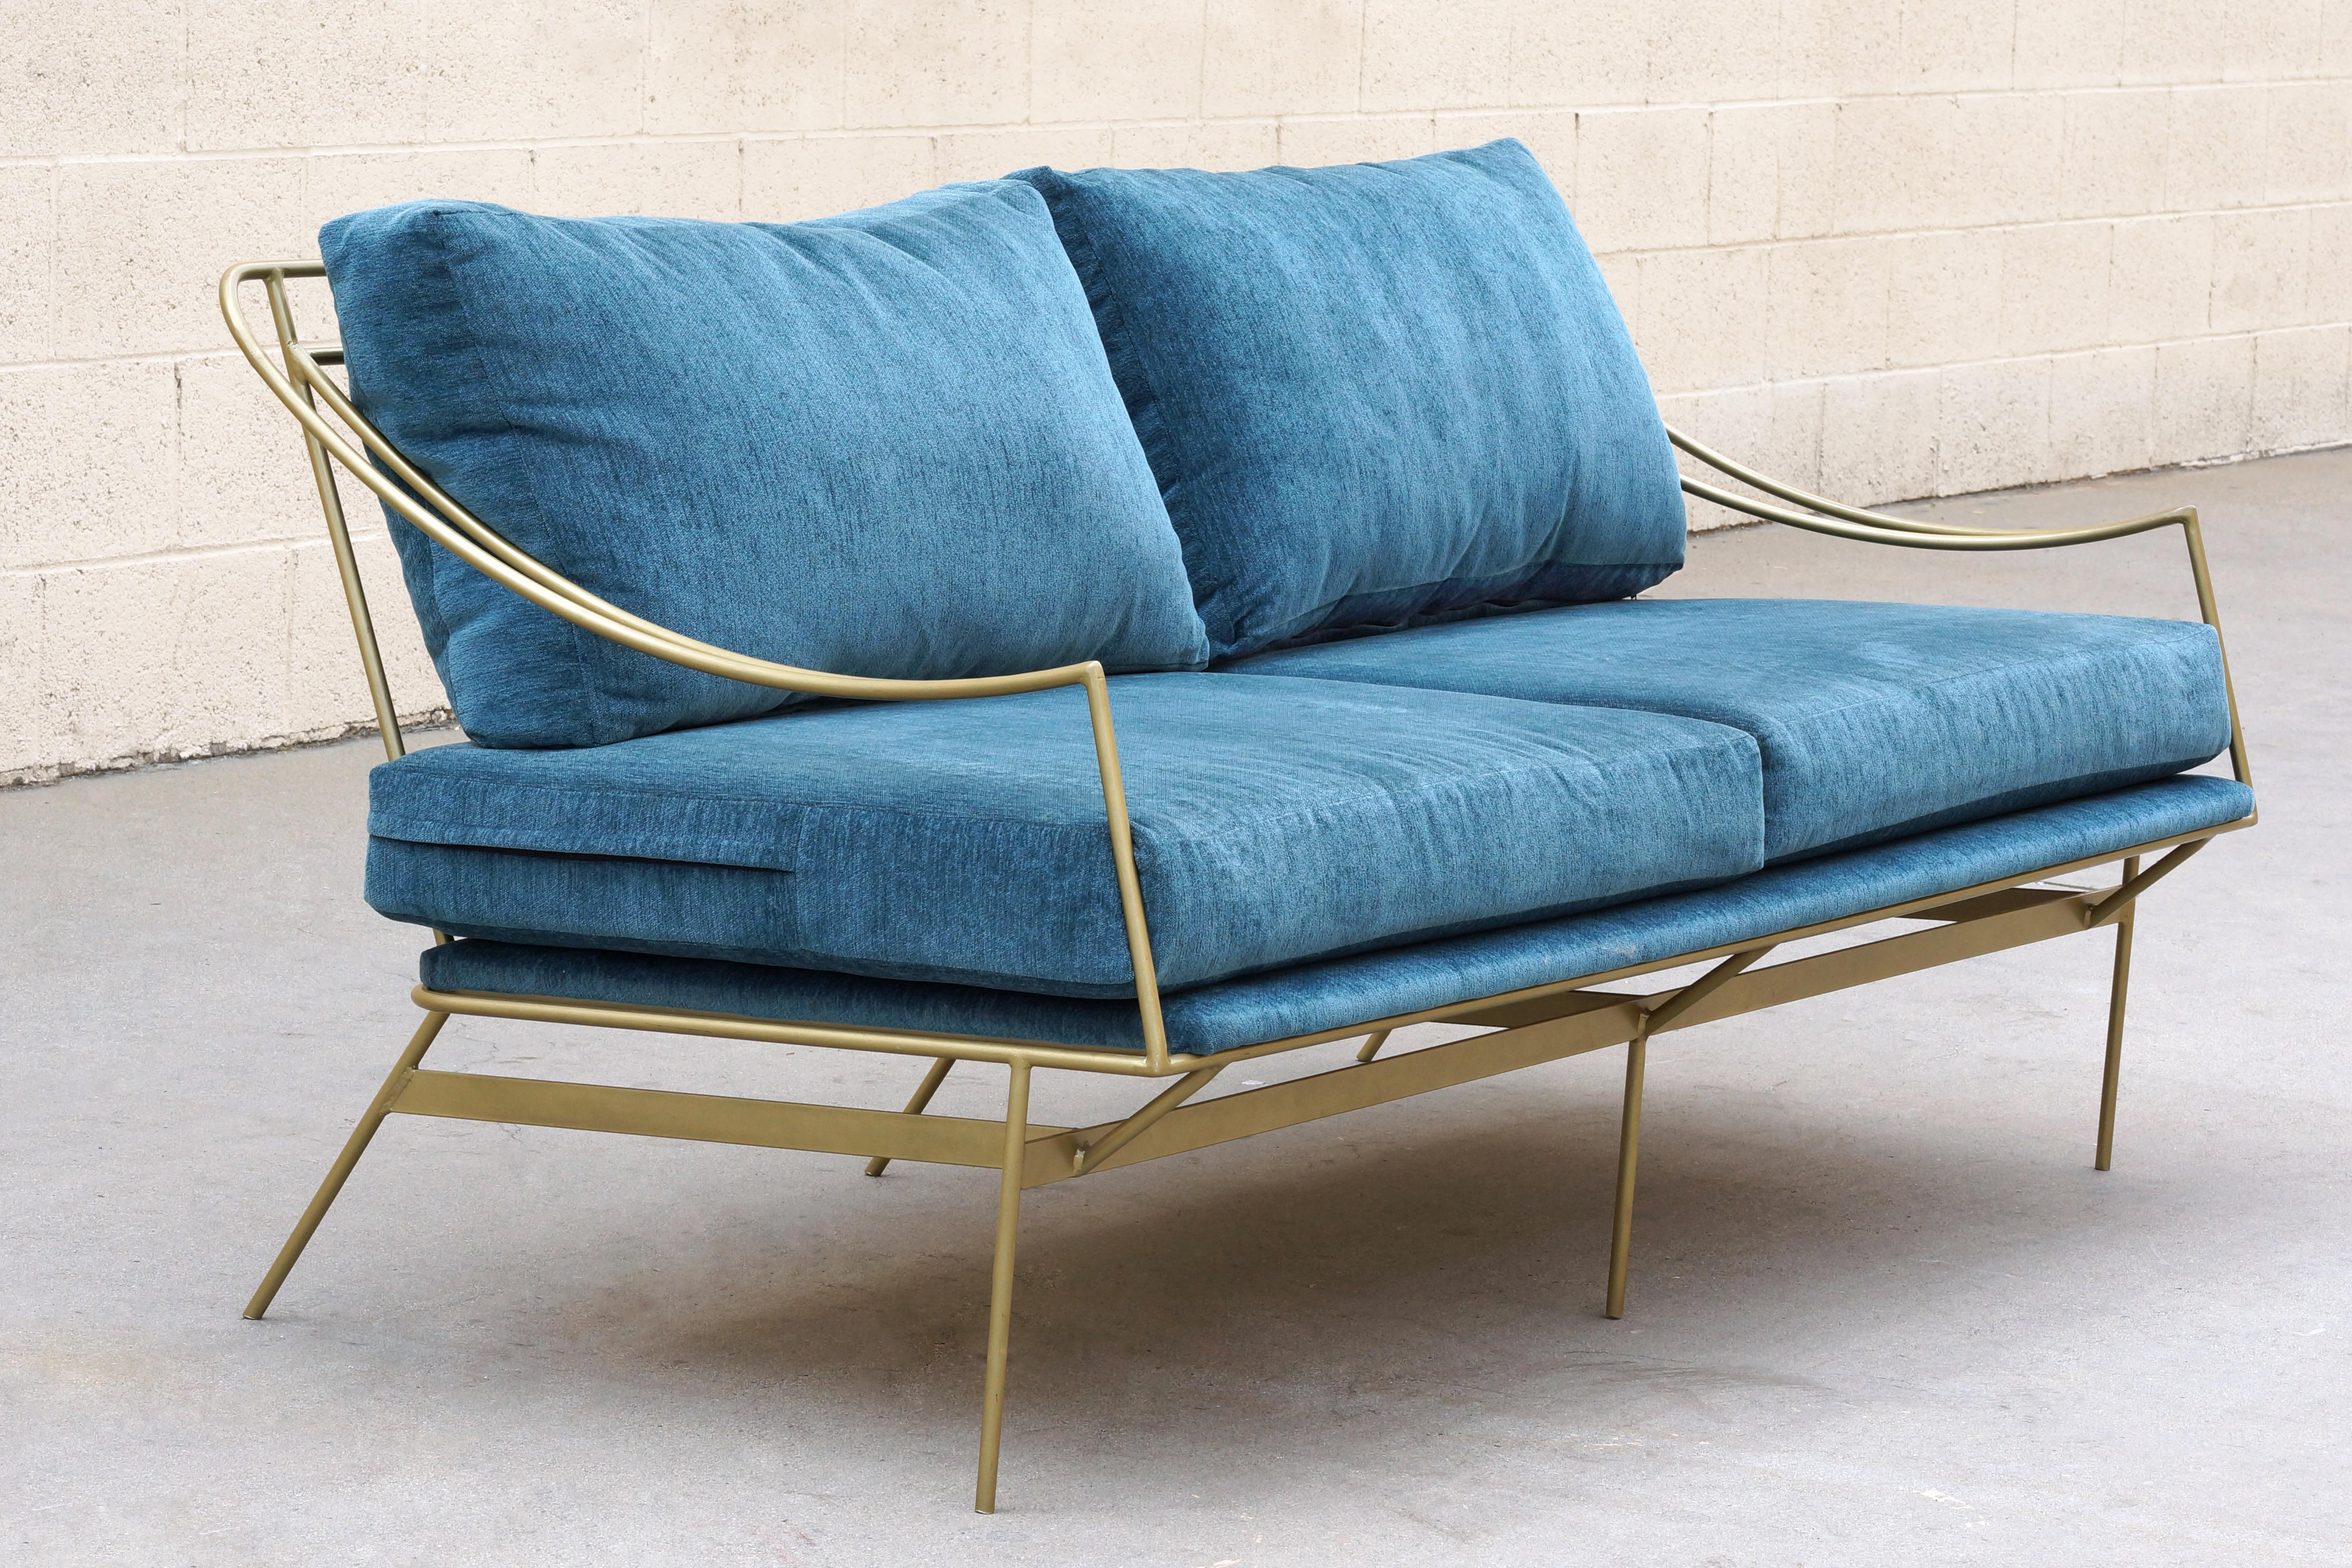 Charmant Fabric Custom 1960s Inspired Hairpin Sofa By Rehab Vintage Interiors For  Sale   Image 7 Of